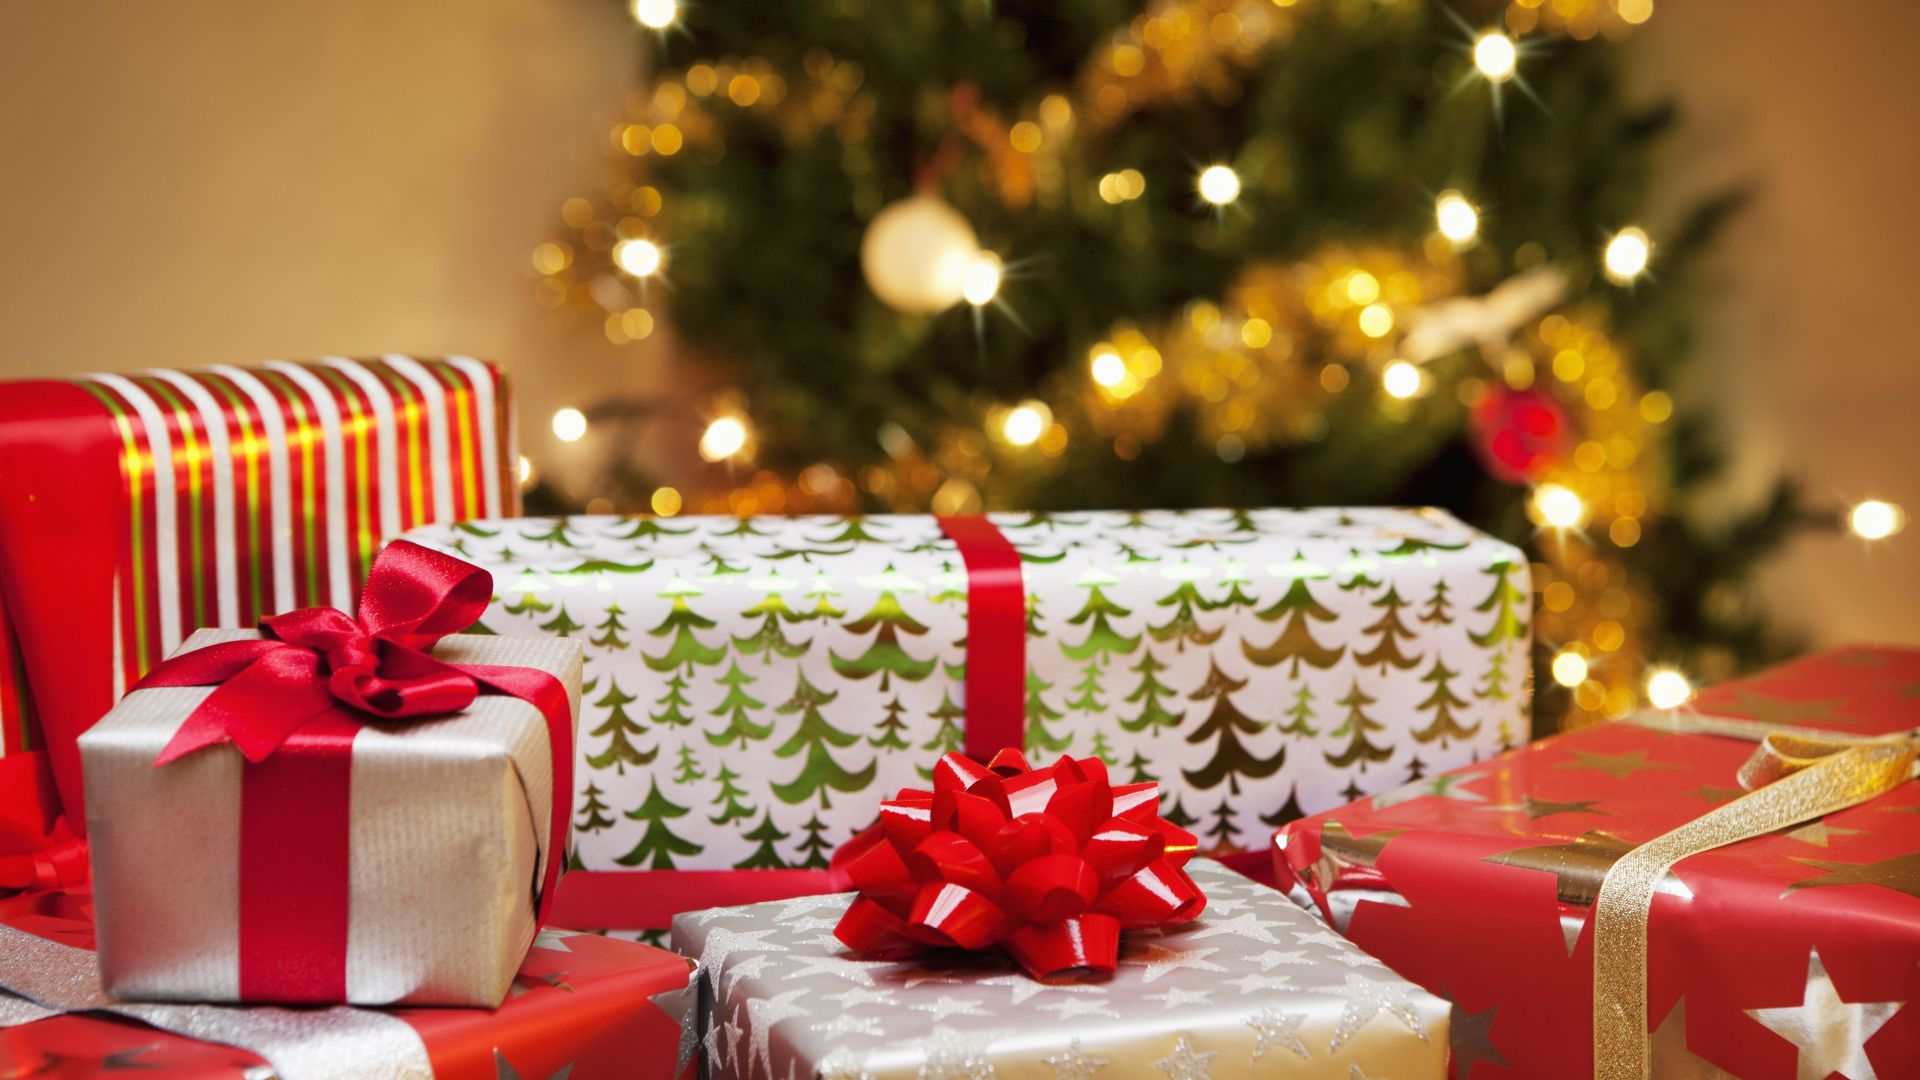 Wallpaper Christmas New Year Gifts 4k Holidays 16687